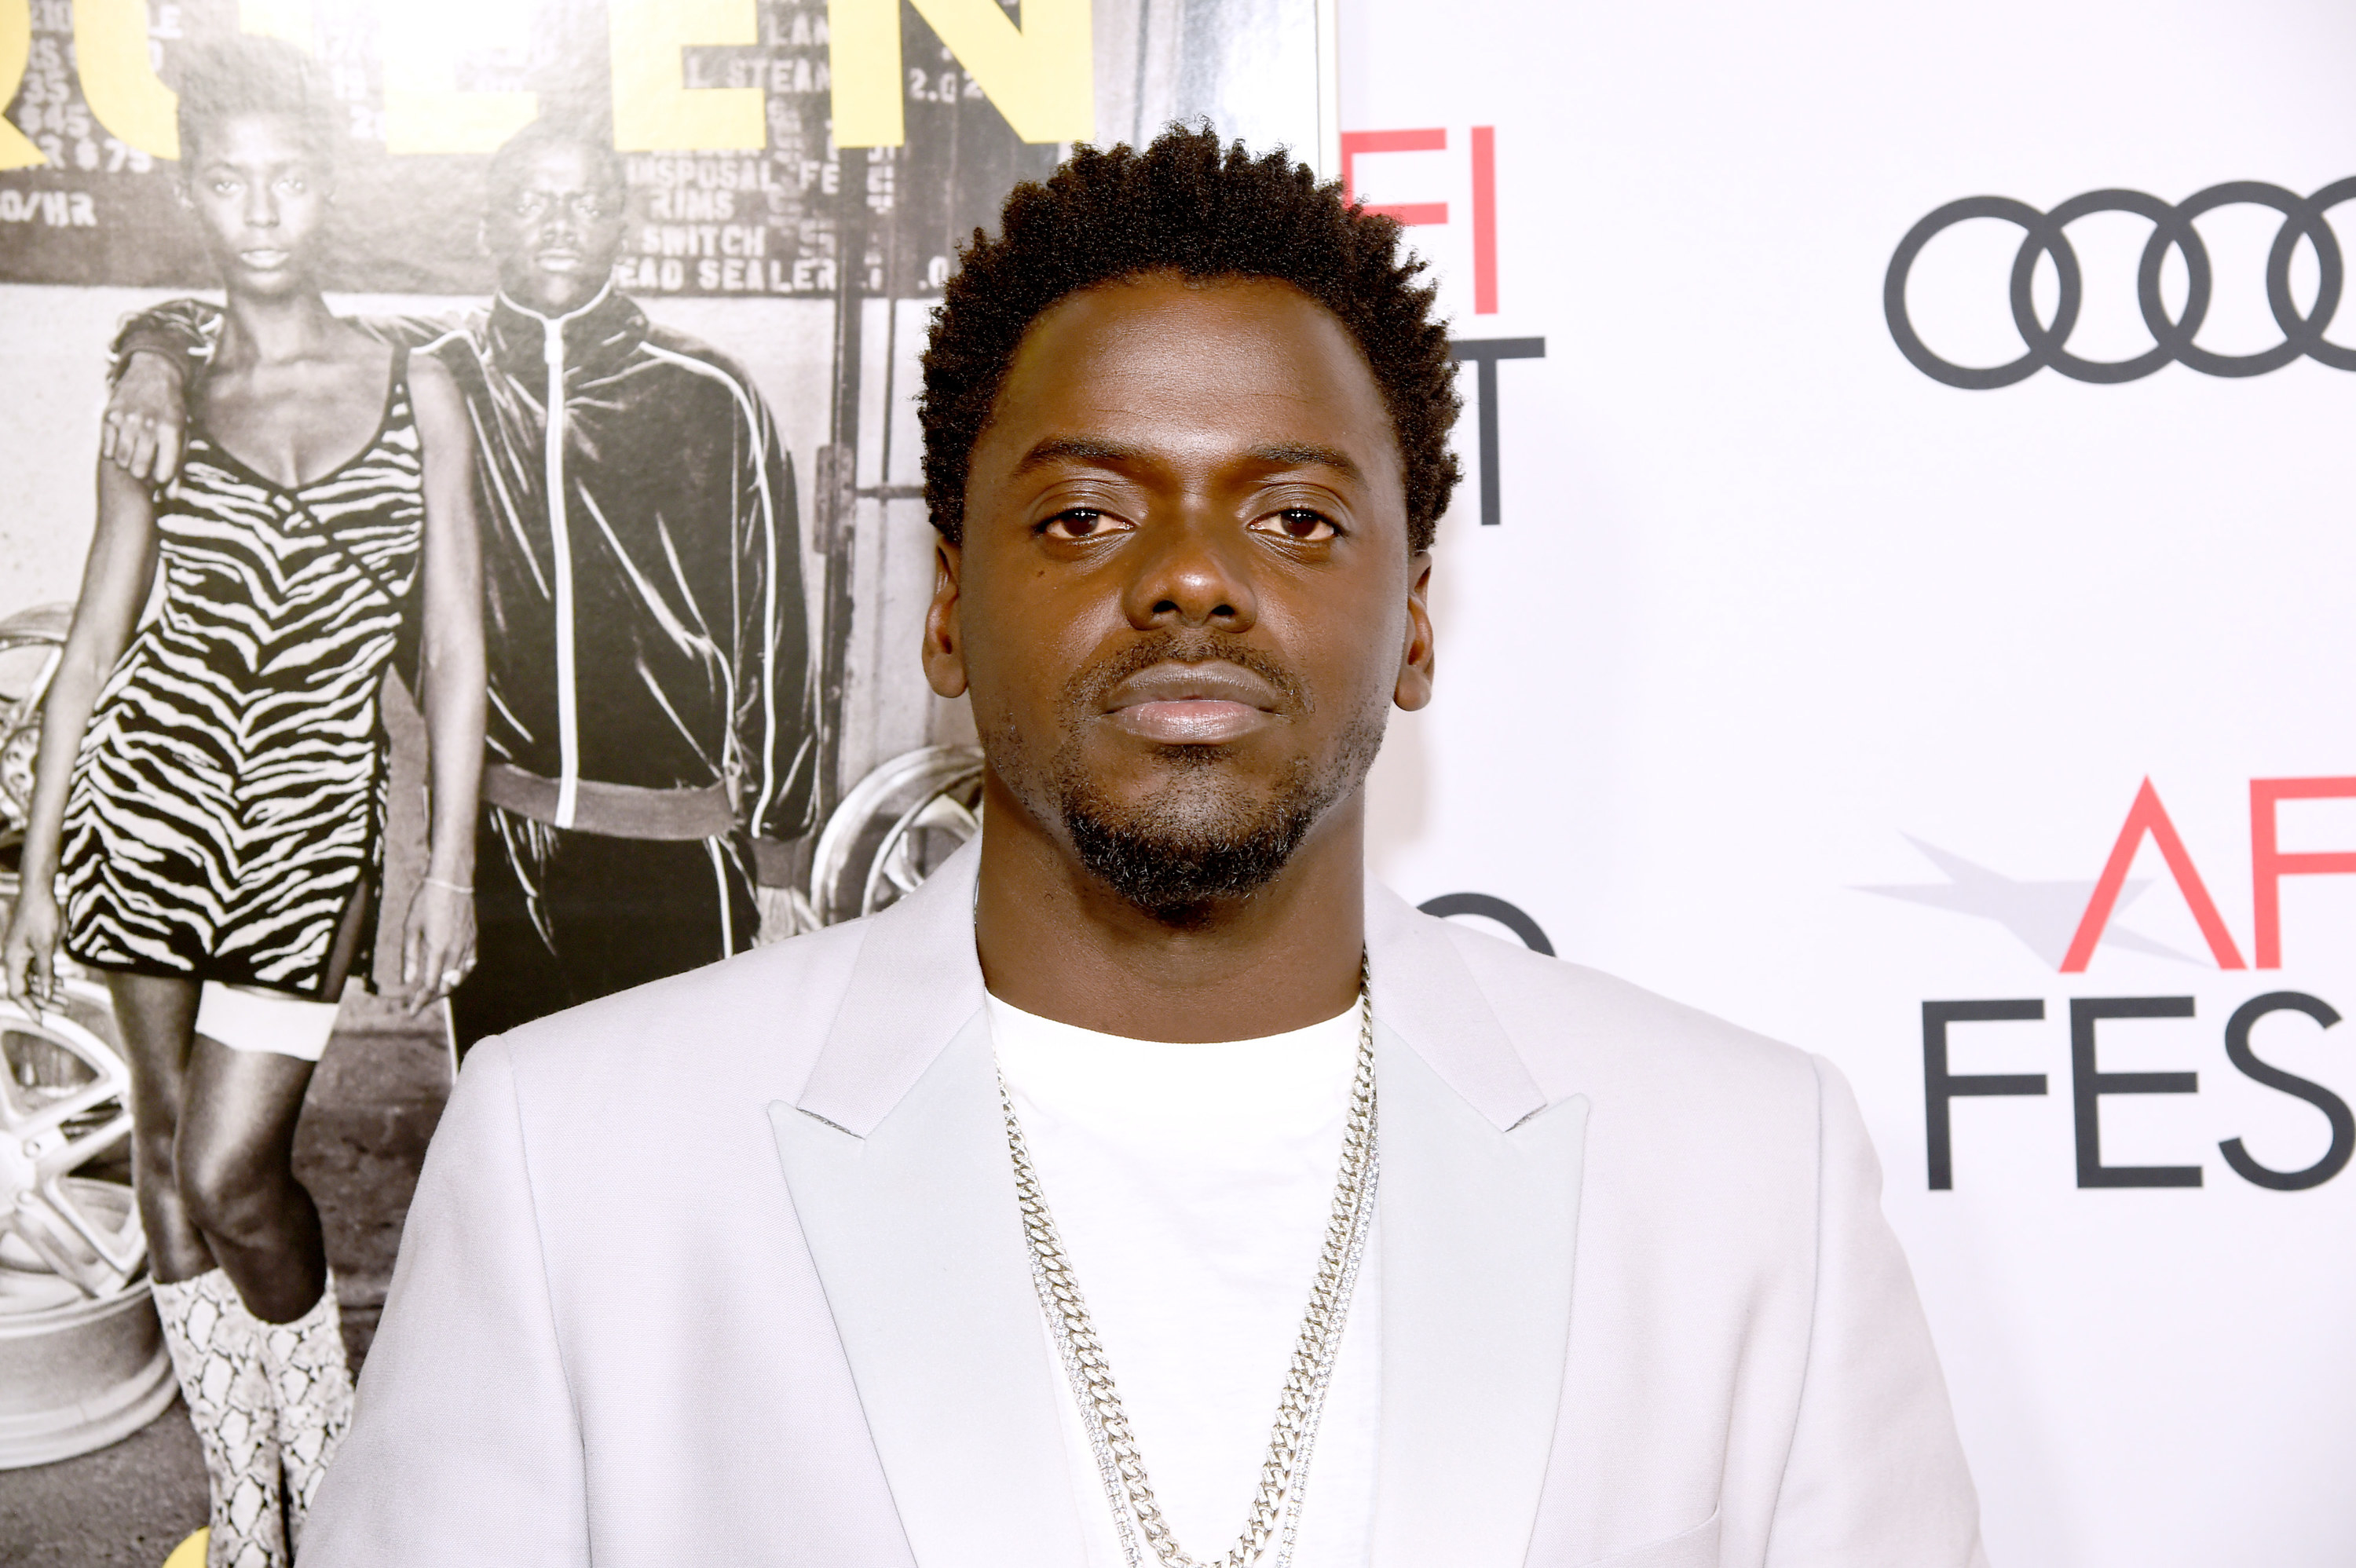 Kaluuya at the Queen & Slim premiere in Hollywood